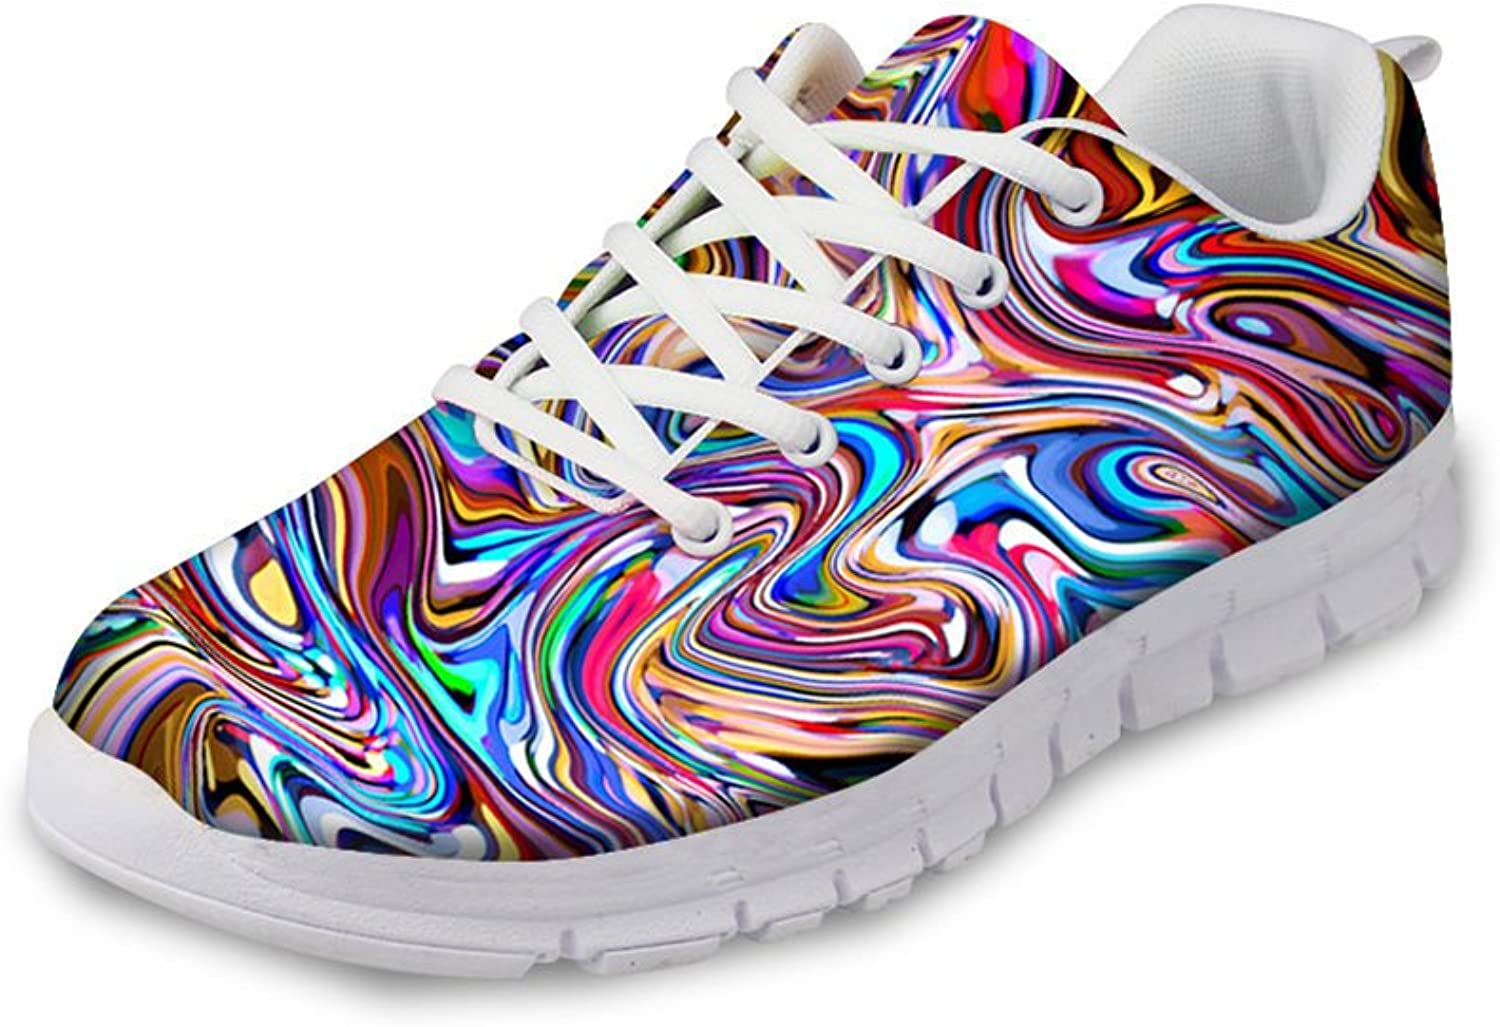 HUGS IDEA Painting Design Women's Fashion Casual Sneakers Lightweight Running shoes